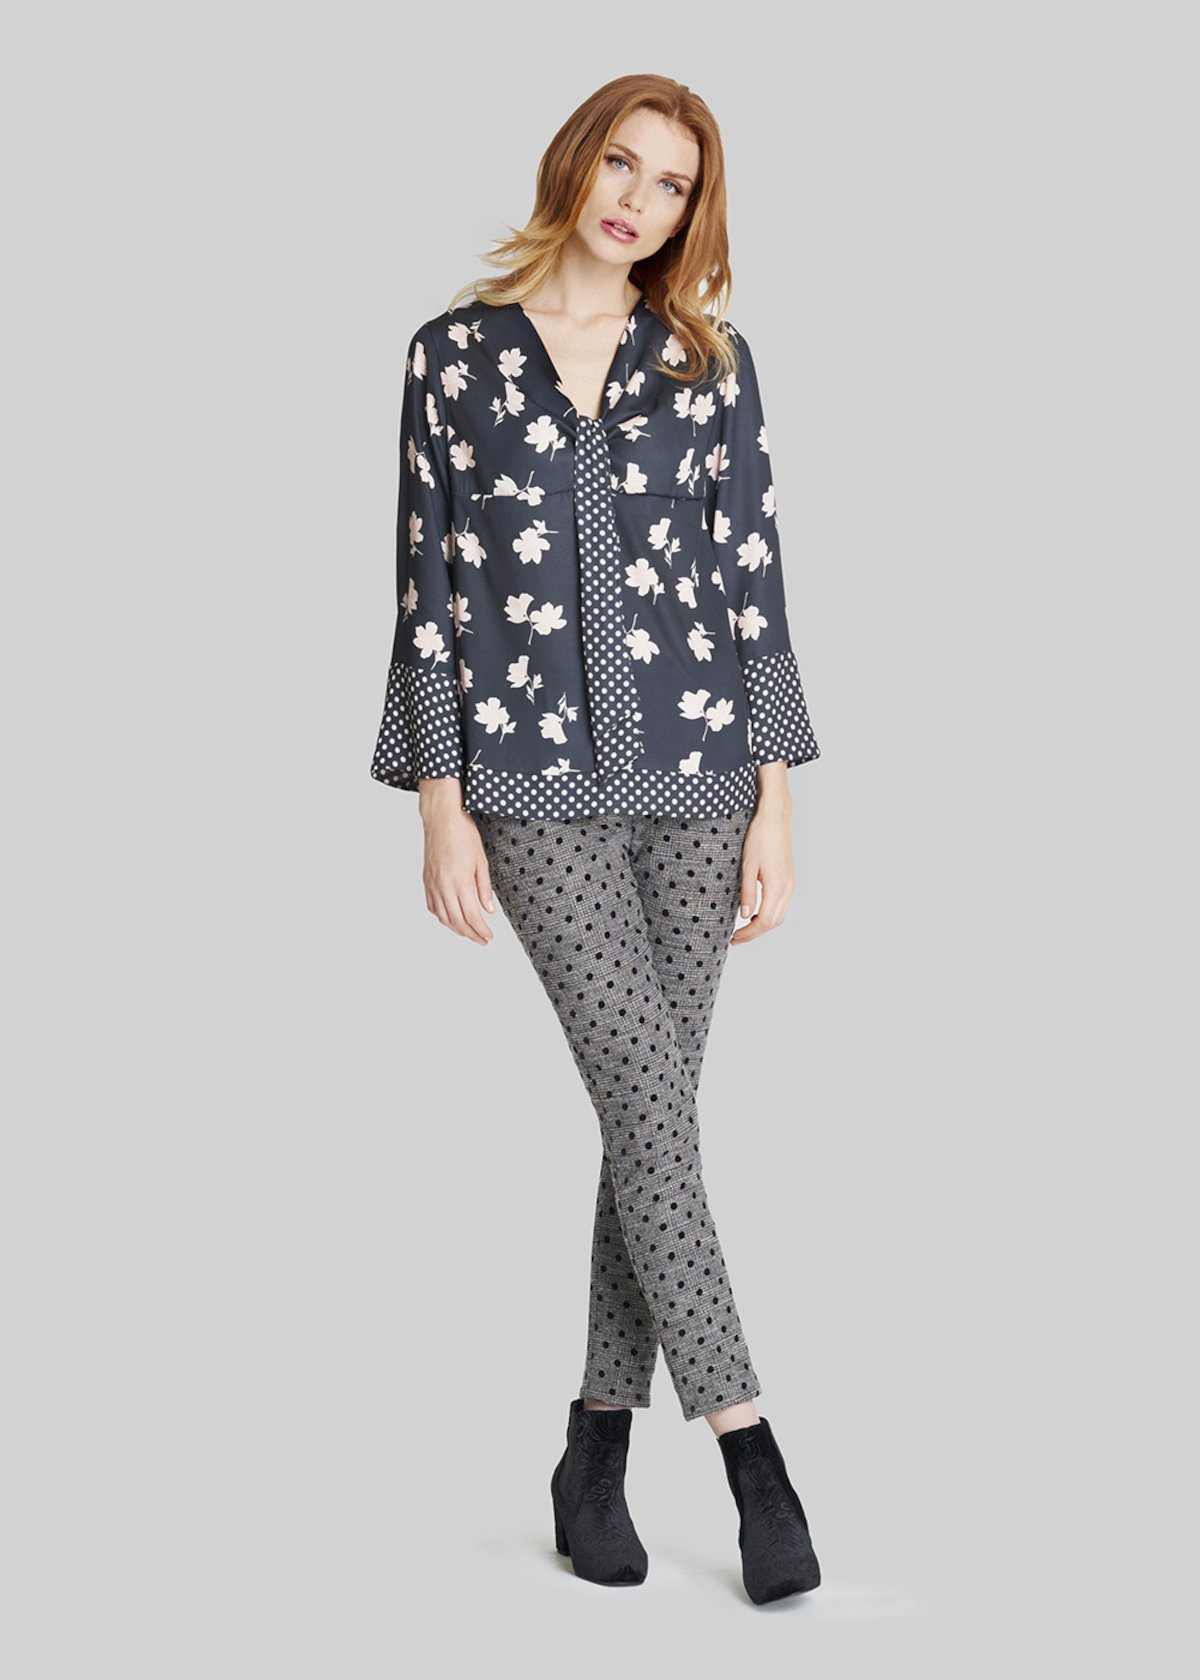 Pluton jeggings trousers with polka dot pattern and velvet bustier